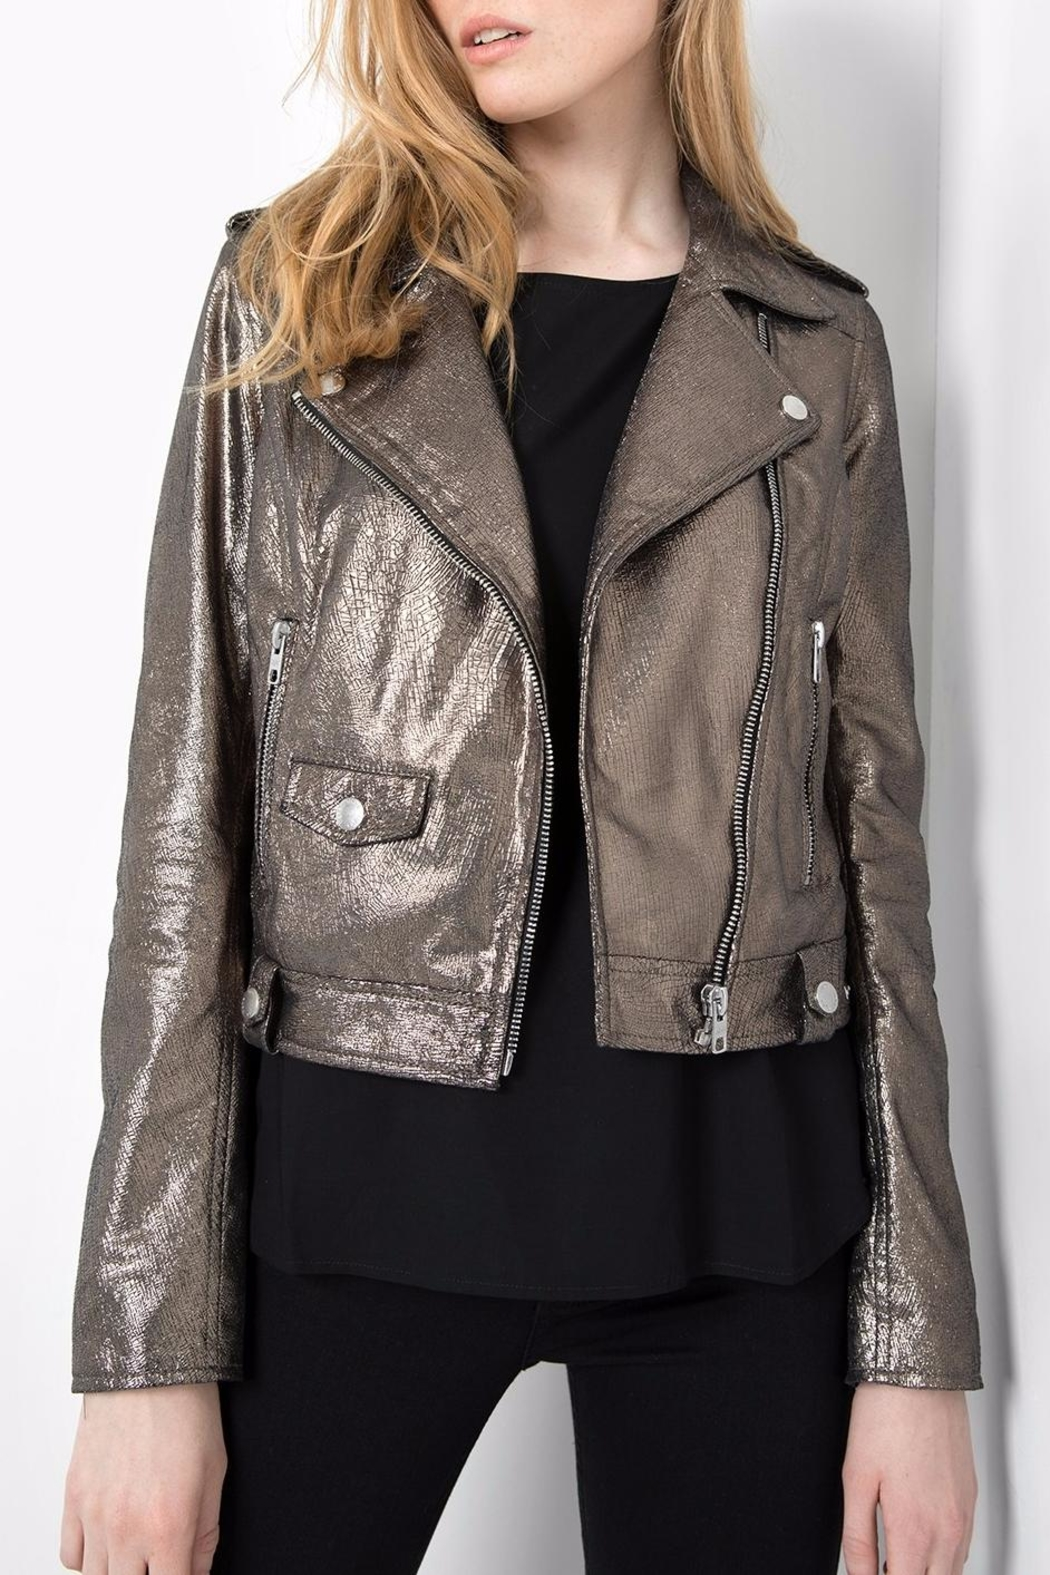 Tigha Galaxia Metallic Jacket - Front Cropped Image